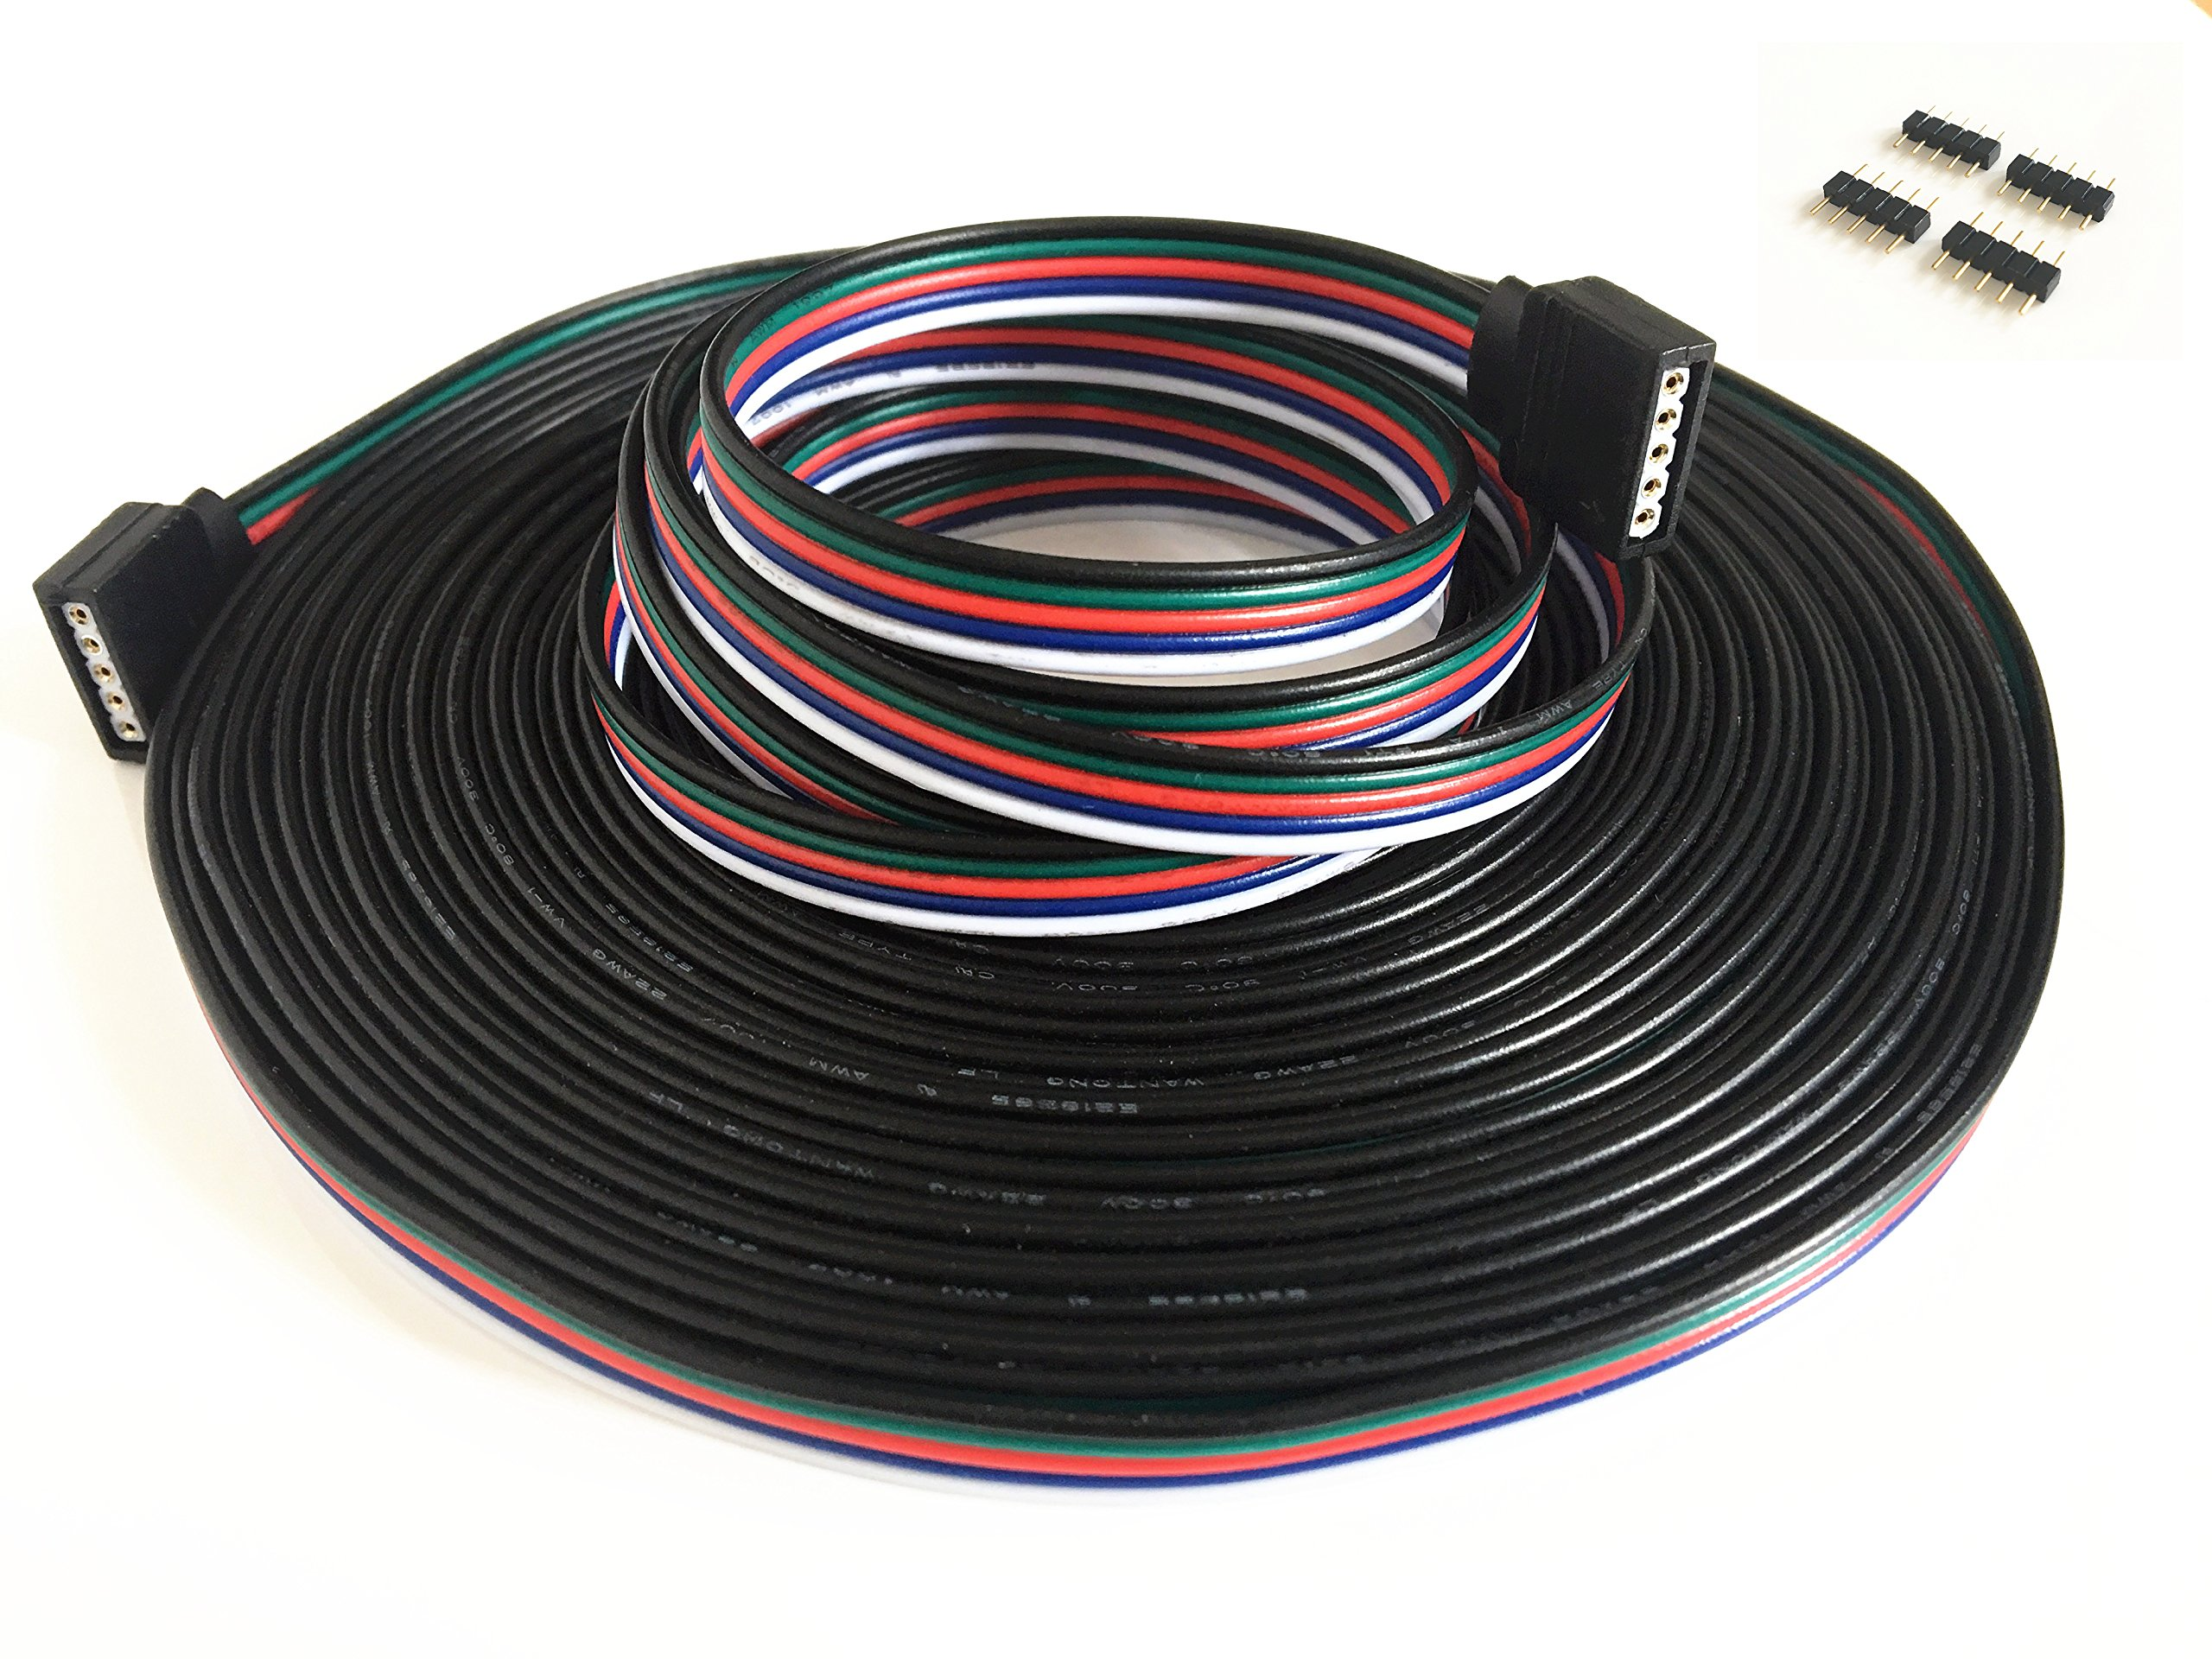 10m/32.8ft RGBW Extension, Cable Line with Full Copper Wires Inside for LED Strip RGBW 5050 3528 Cord 5pin ,RGBW Wire,RGB Extension Cable,led Extension Cable